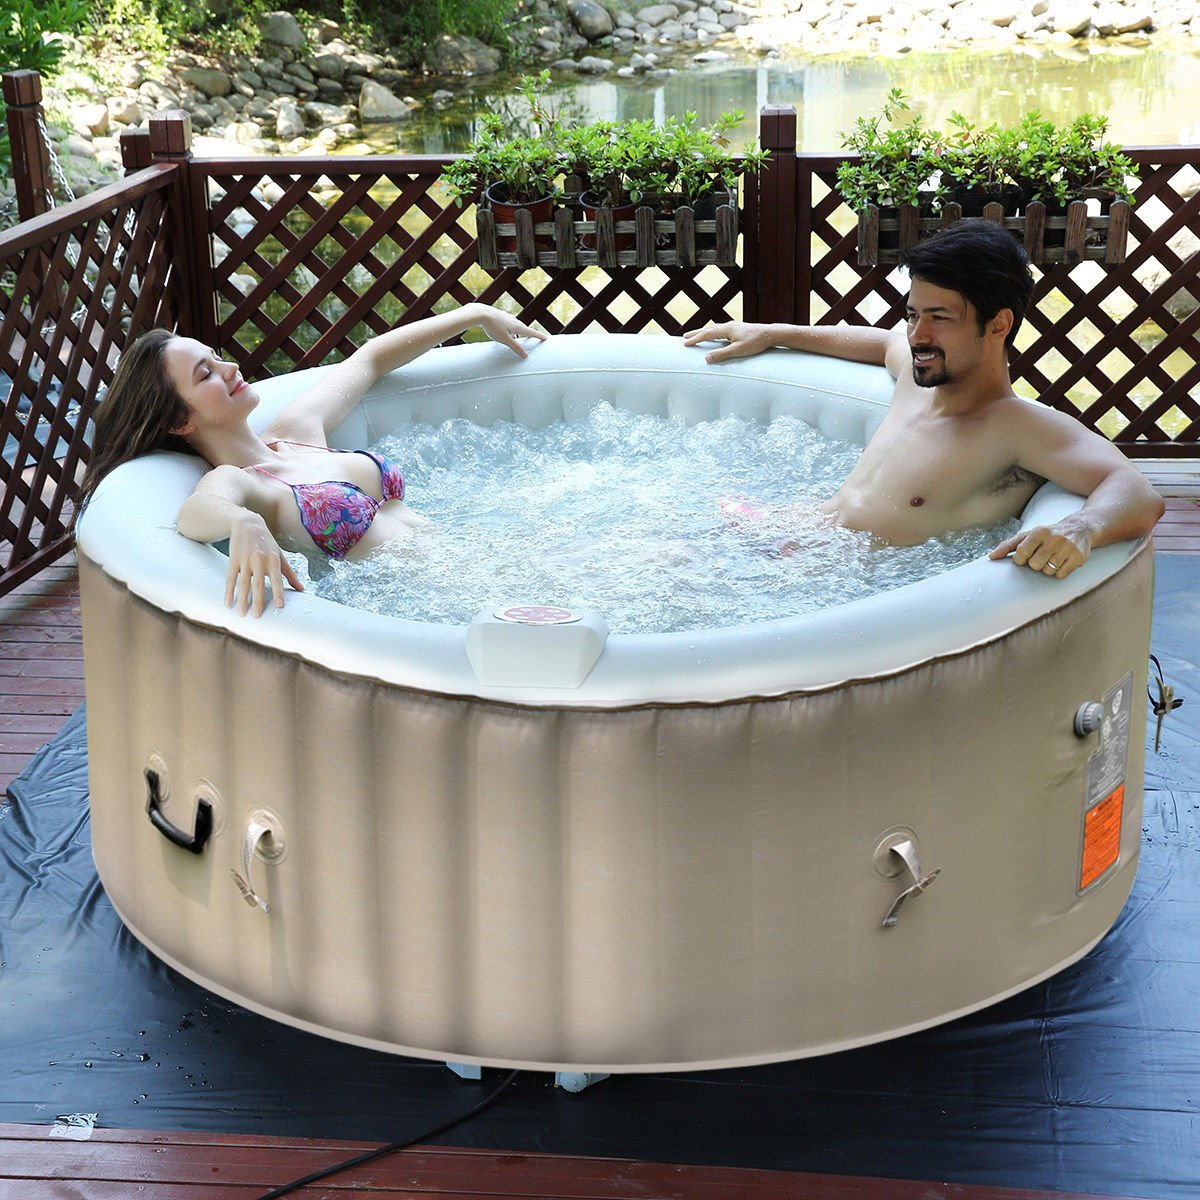 The Best Outdoor Hot Tubs For Your Garden: Reviews & Buying Guide 8